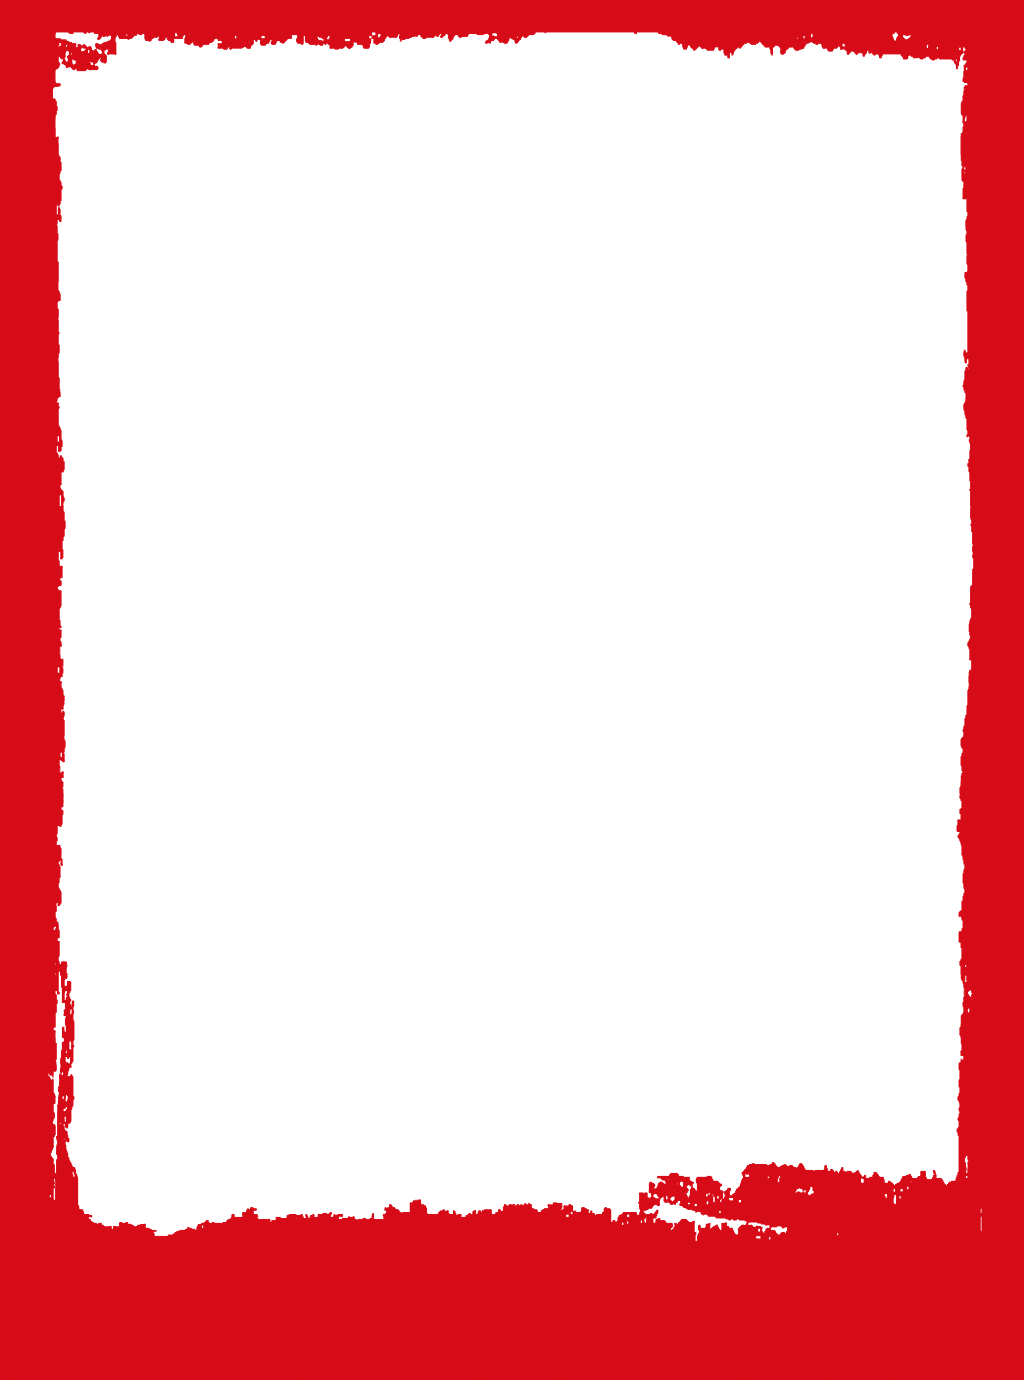 Red grunge border png. Chinese asian frame ftestickers